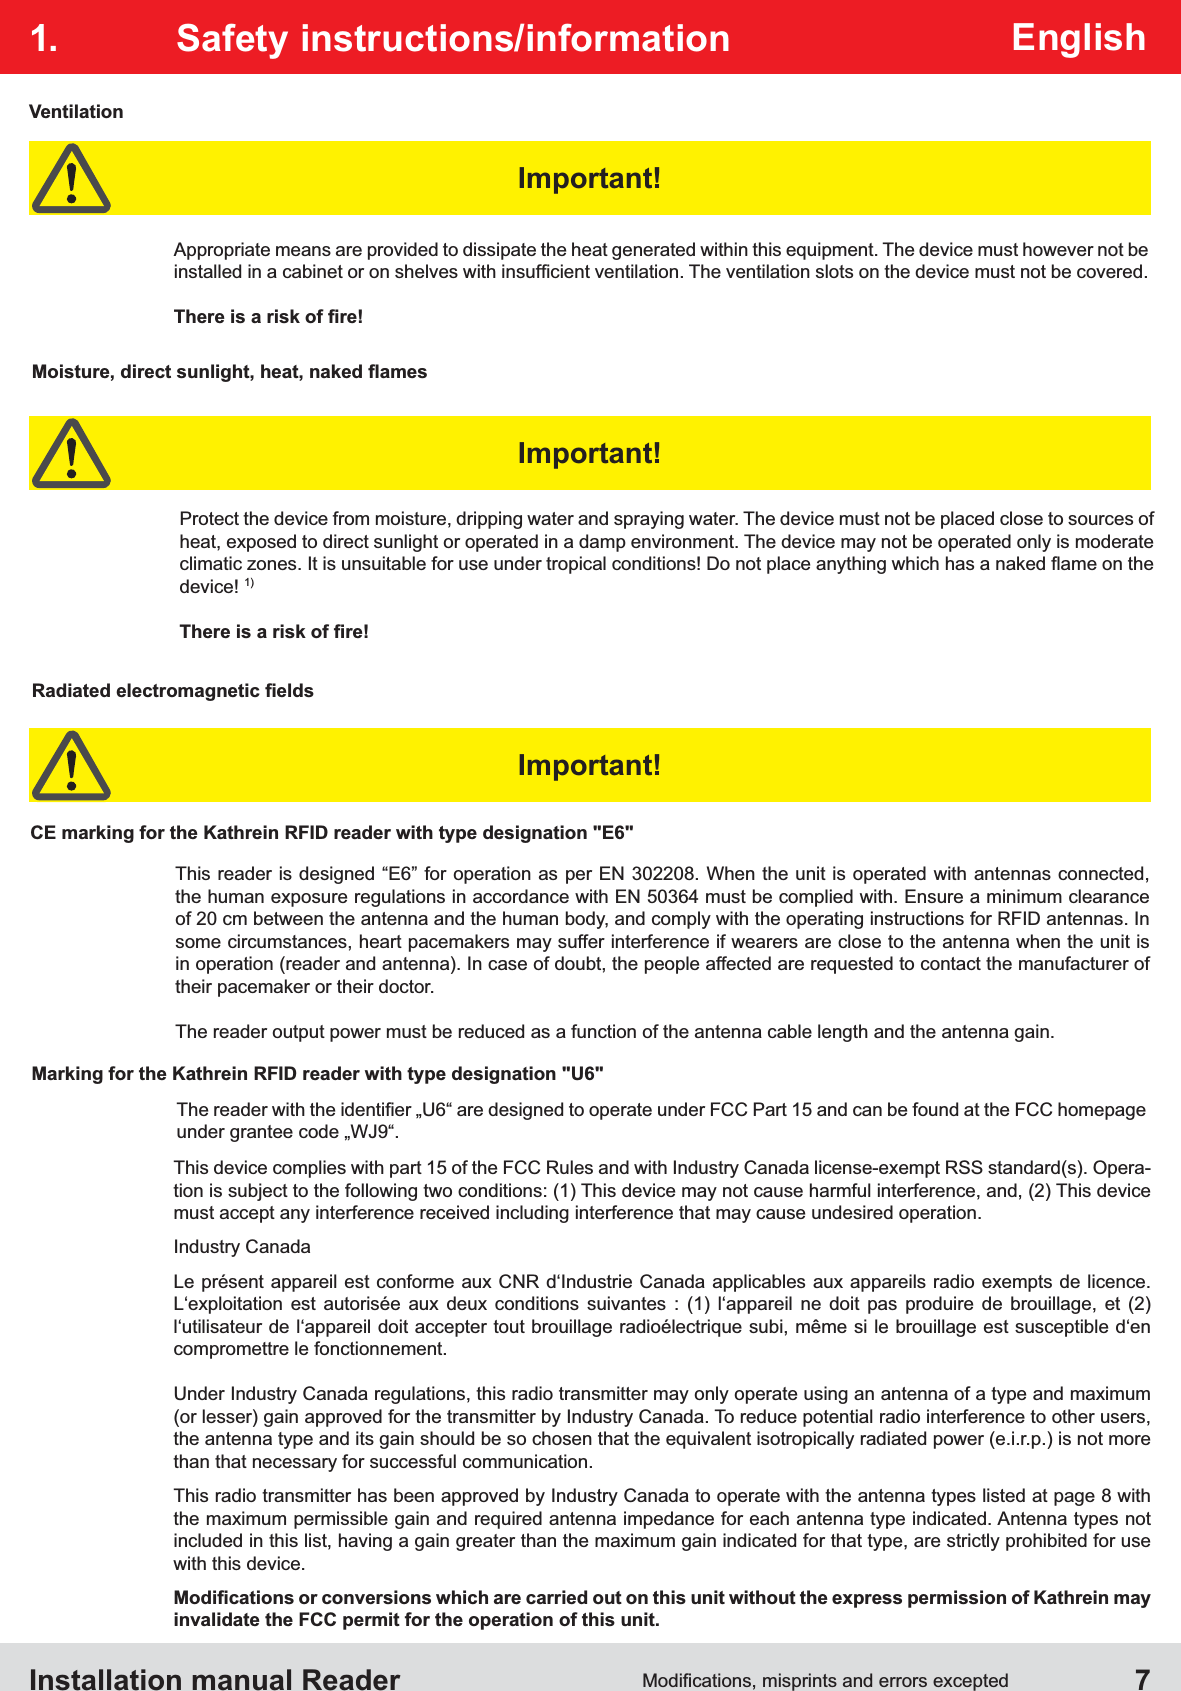 """Installation manual Reader  7English1. Safety instructions/informationCE marking for the Kathrein RFID reader with type designation """"E6""""Appropriate means are provided to dissipate the heat generated within this equipment. The device must however not be VentilationProtect the device from moisture, dripping water and spraying water. The device must not be placed close to sources of heat, exposed to direct sunlight or operated in a damp environment. The device may not be operated only is moderate device! 1)This reader is designed """"E6"""" for operation as per EN 302208. When the unit is operated with antennas connected, the human exposure regulations in accordance with EN 50364 must be complied with. Ensure a minimum clearance of 20 cm between the antenna and the human body, and comply with the operating instructions for RFID antennas. In some circumstances, heart pacemakers may suffer interference if wearers are close to the antenna when the unit is in operation (reader and antenna). In case of doubt, the people affected are requested to contact the manufacturer of their pacemaker or their doctor.The reader output power must be reduced as a function of the antenna cable length and the antenna gain.Marking for the Kathrein RFID reader with type designation """"U6""""This device complies with part 15 of the FCC Rules and with Industry Canada license-exempt RSS standard(s). Opera-must accept any interference received including interference that may cause undesired operation.Industry CanadaLe présent appareil est conforme aux CNR d'Industrie Canada applicables aux appareils radio exempts de licence. L'exploitation est autorisée aux deux conditions suivantes : (1) l'appareil ne doit pas produire de brouillage, et (2) l'utilisateur de l'appareil doit accepter tout brouillage radioélectrique subi, même si le brouillage est susceptible d'en compromettre le fonctionnement.Under Industry Canada regulations, this radio transmitter may only operate using an antenna of a type and maximum (o"""